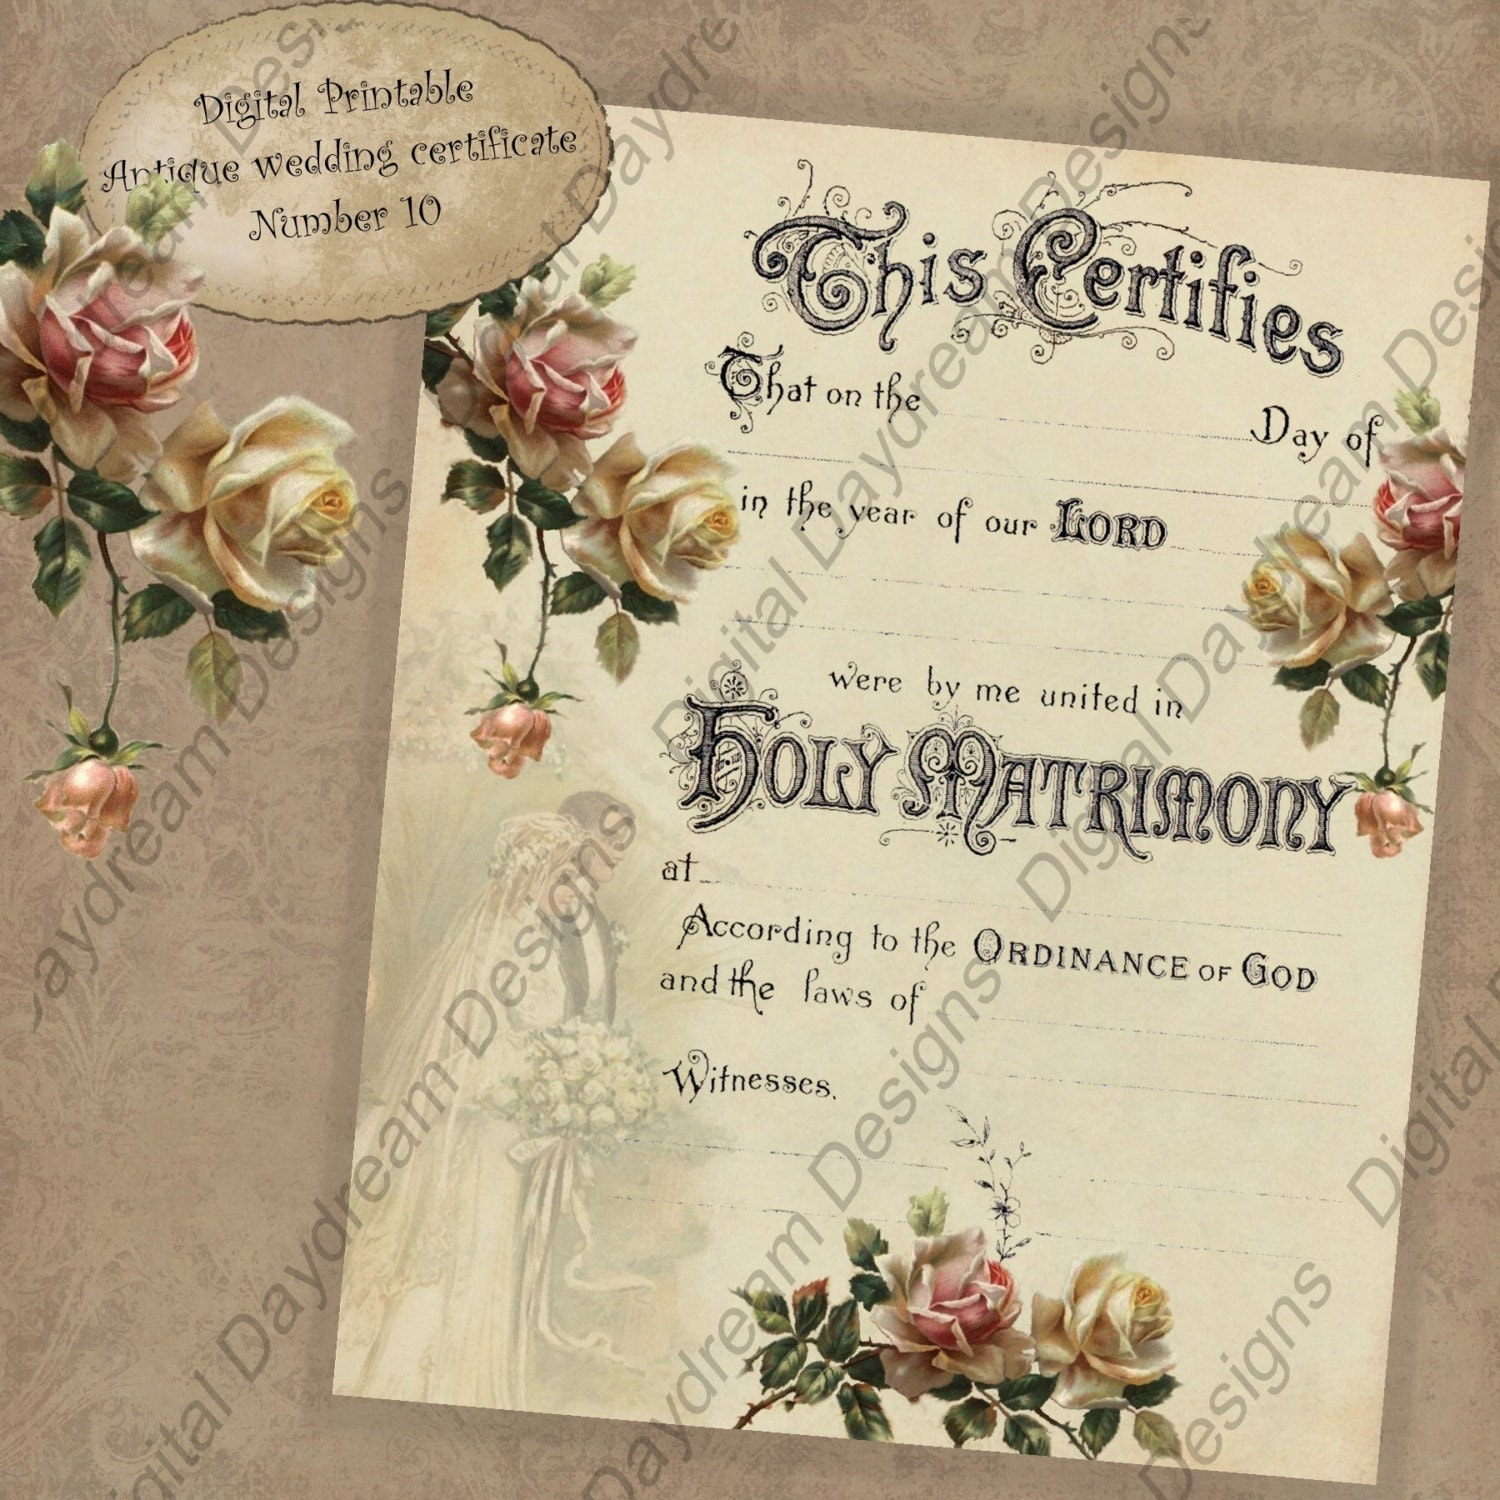 This is a picture of Declarative Printable Marriage Certificate